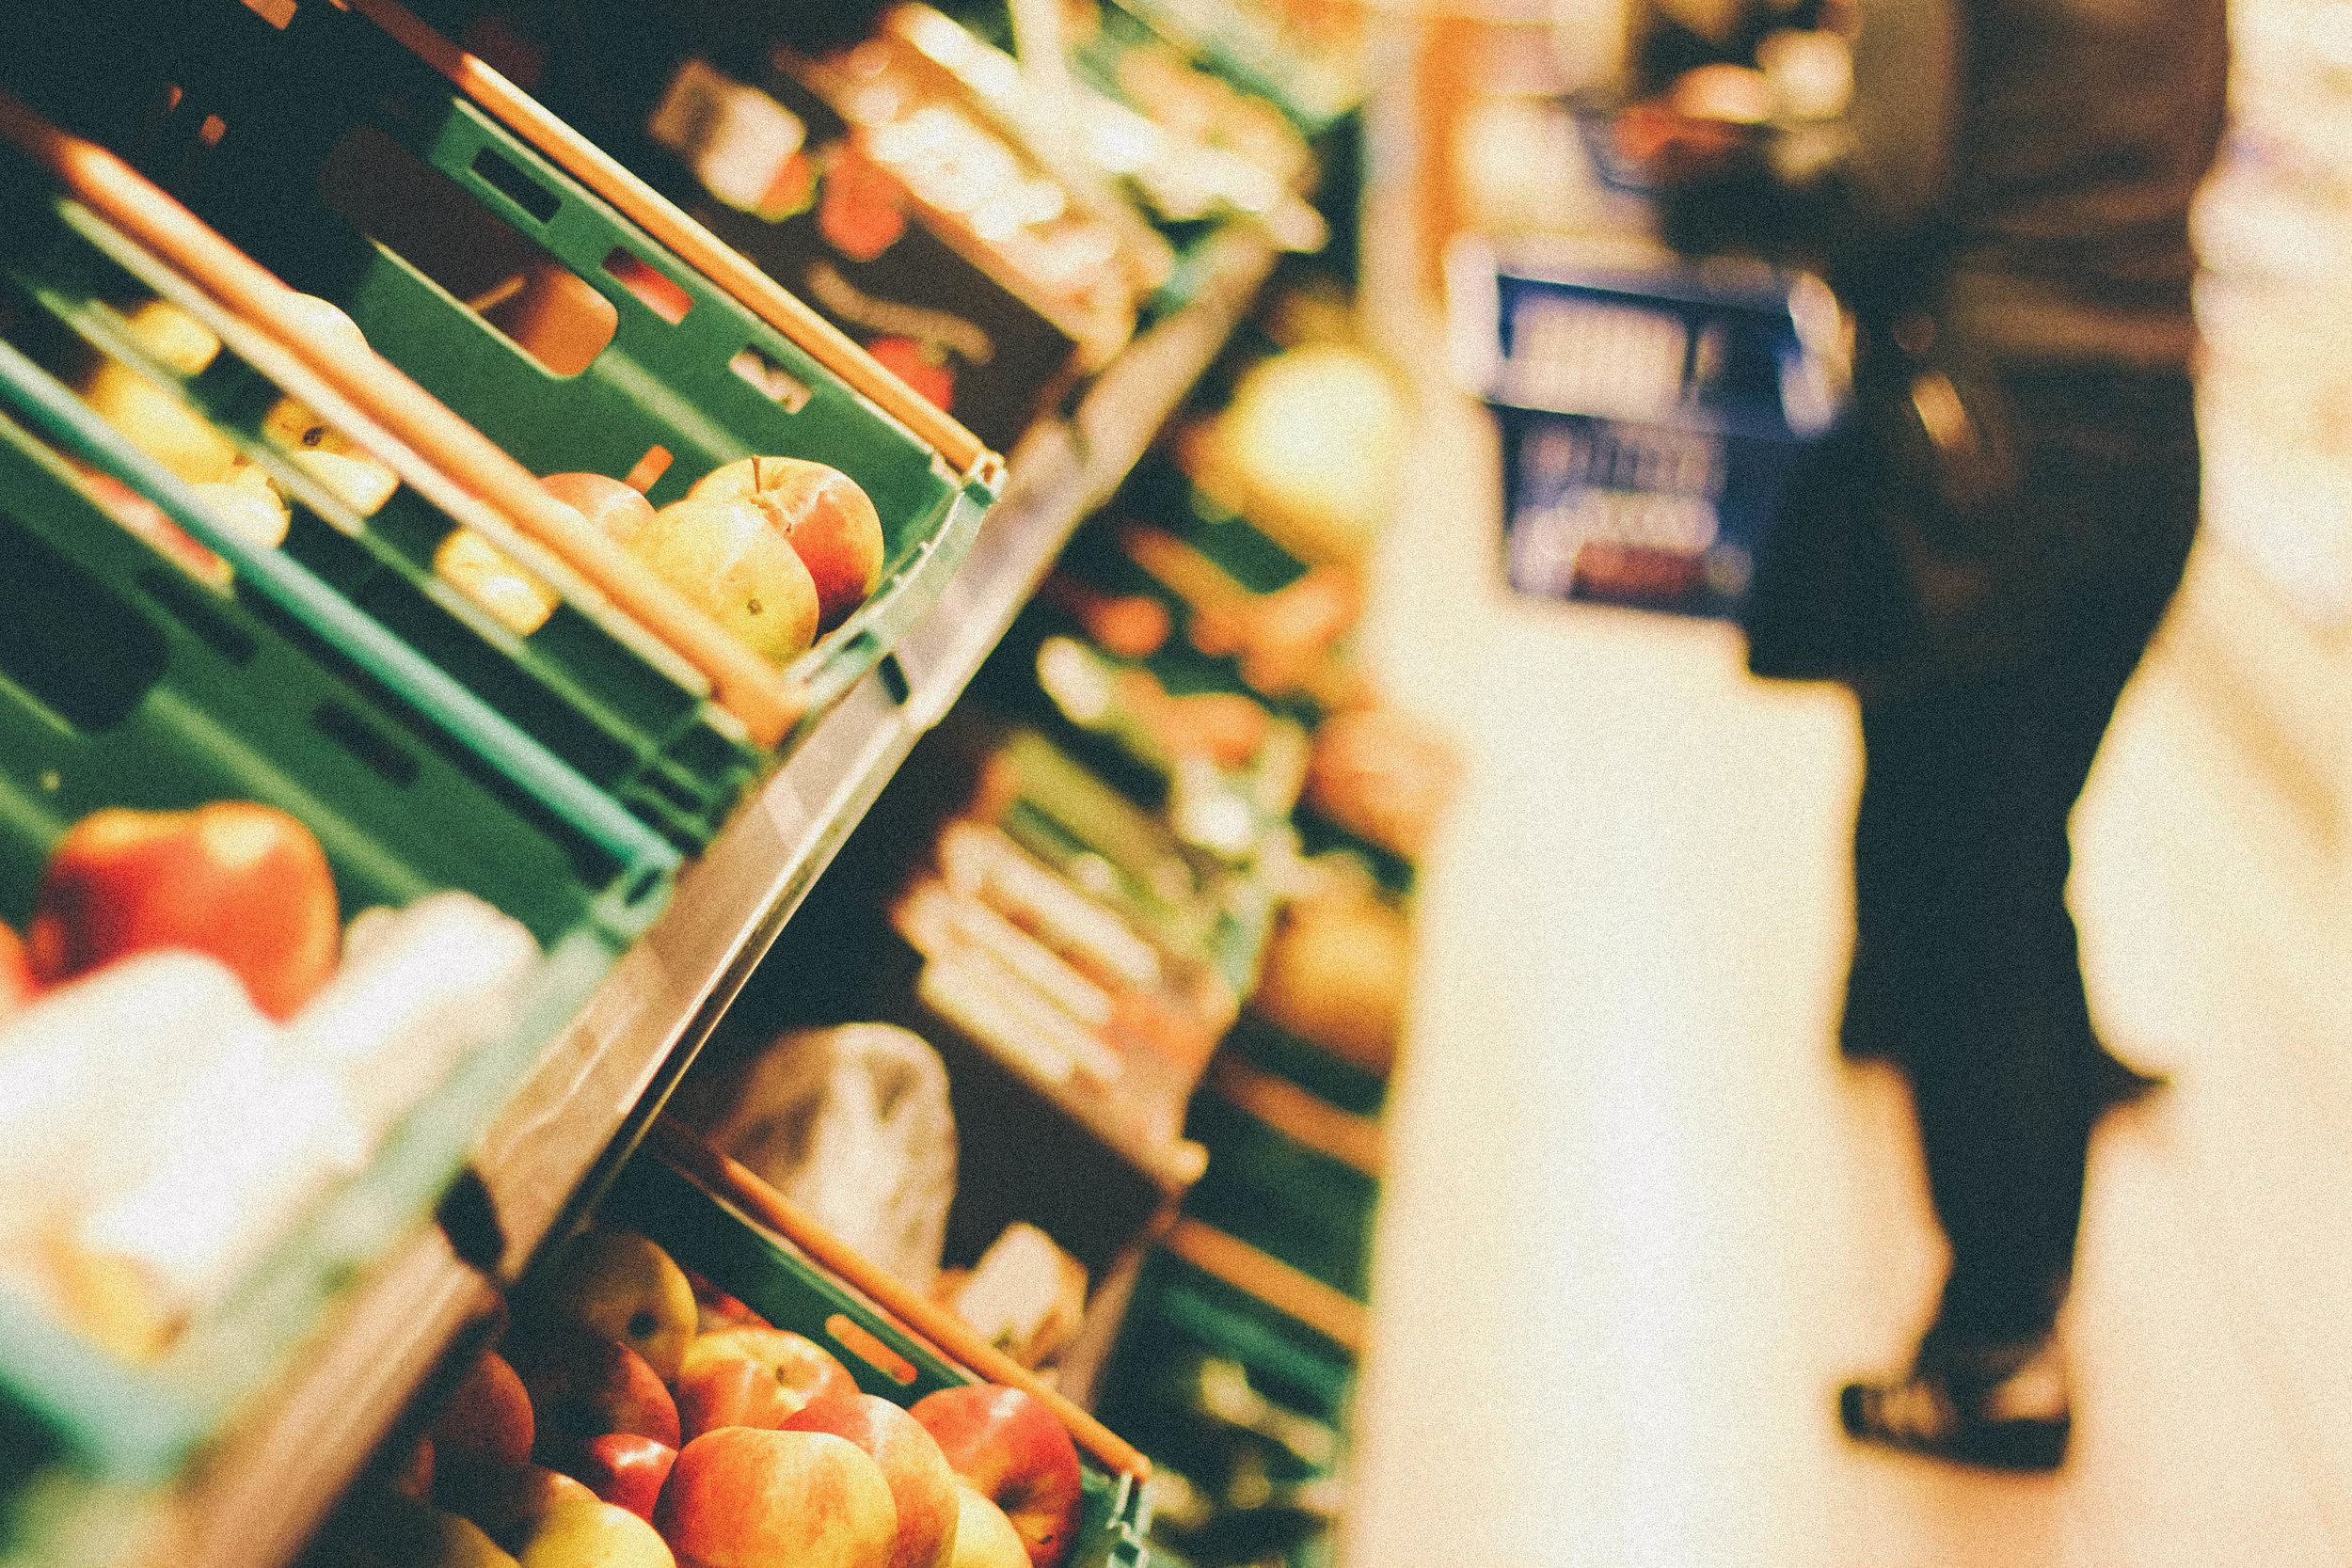 Food Insecurity And The Potential Effects Of A Government Shutdown